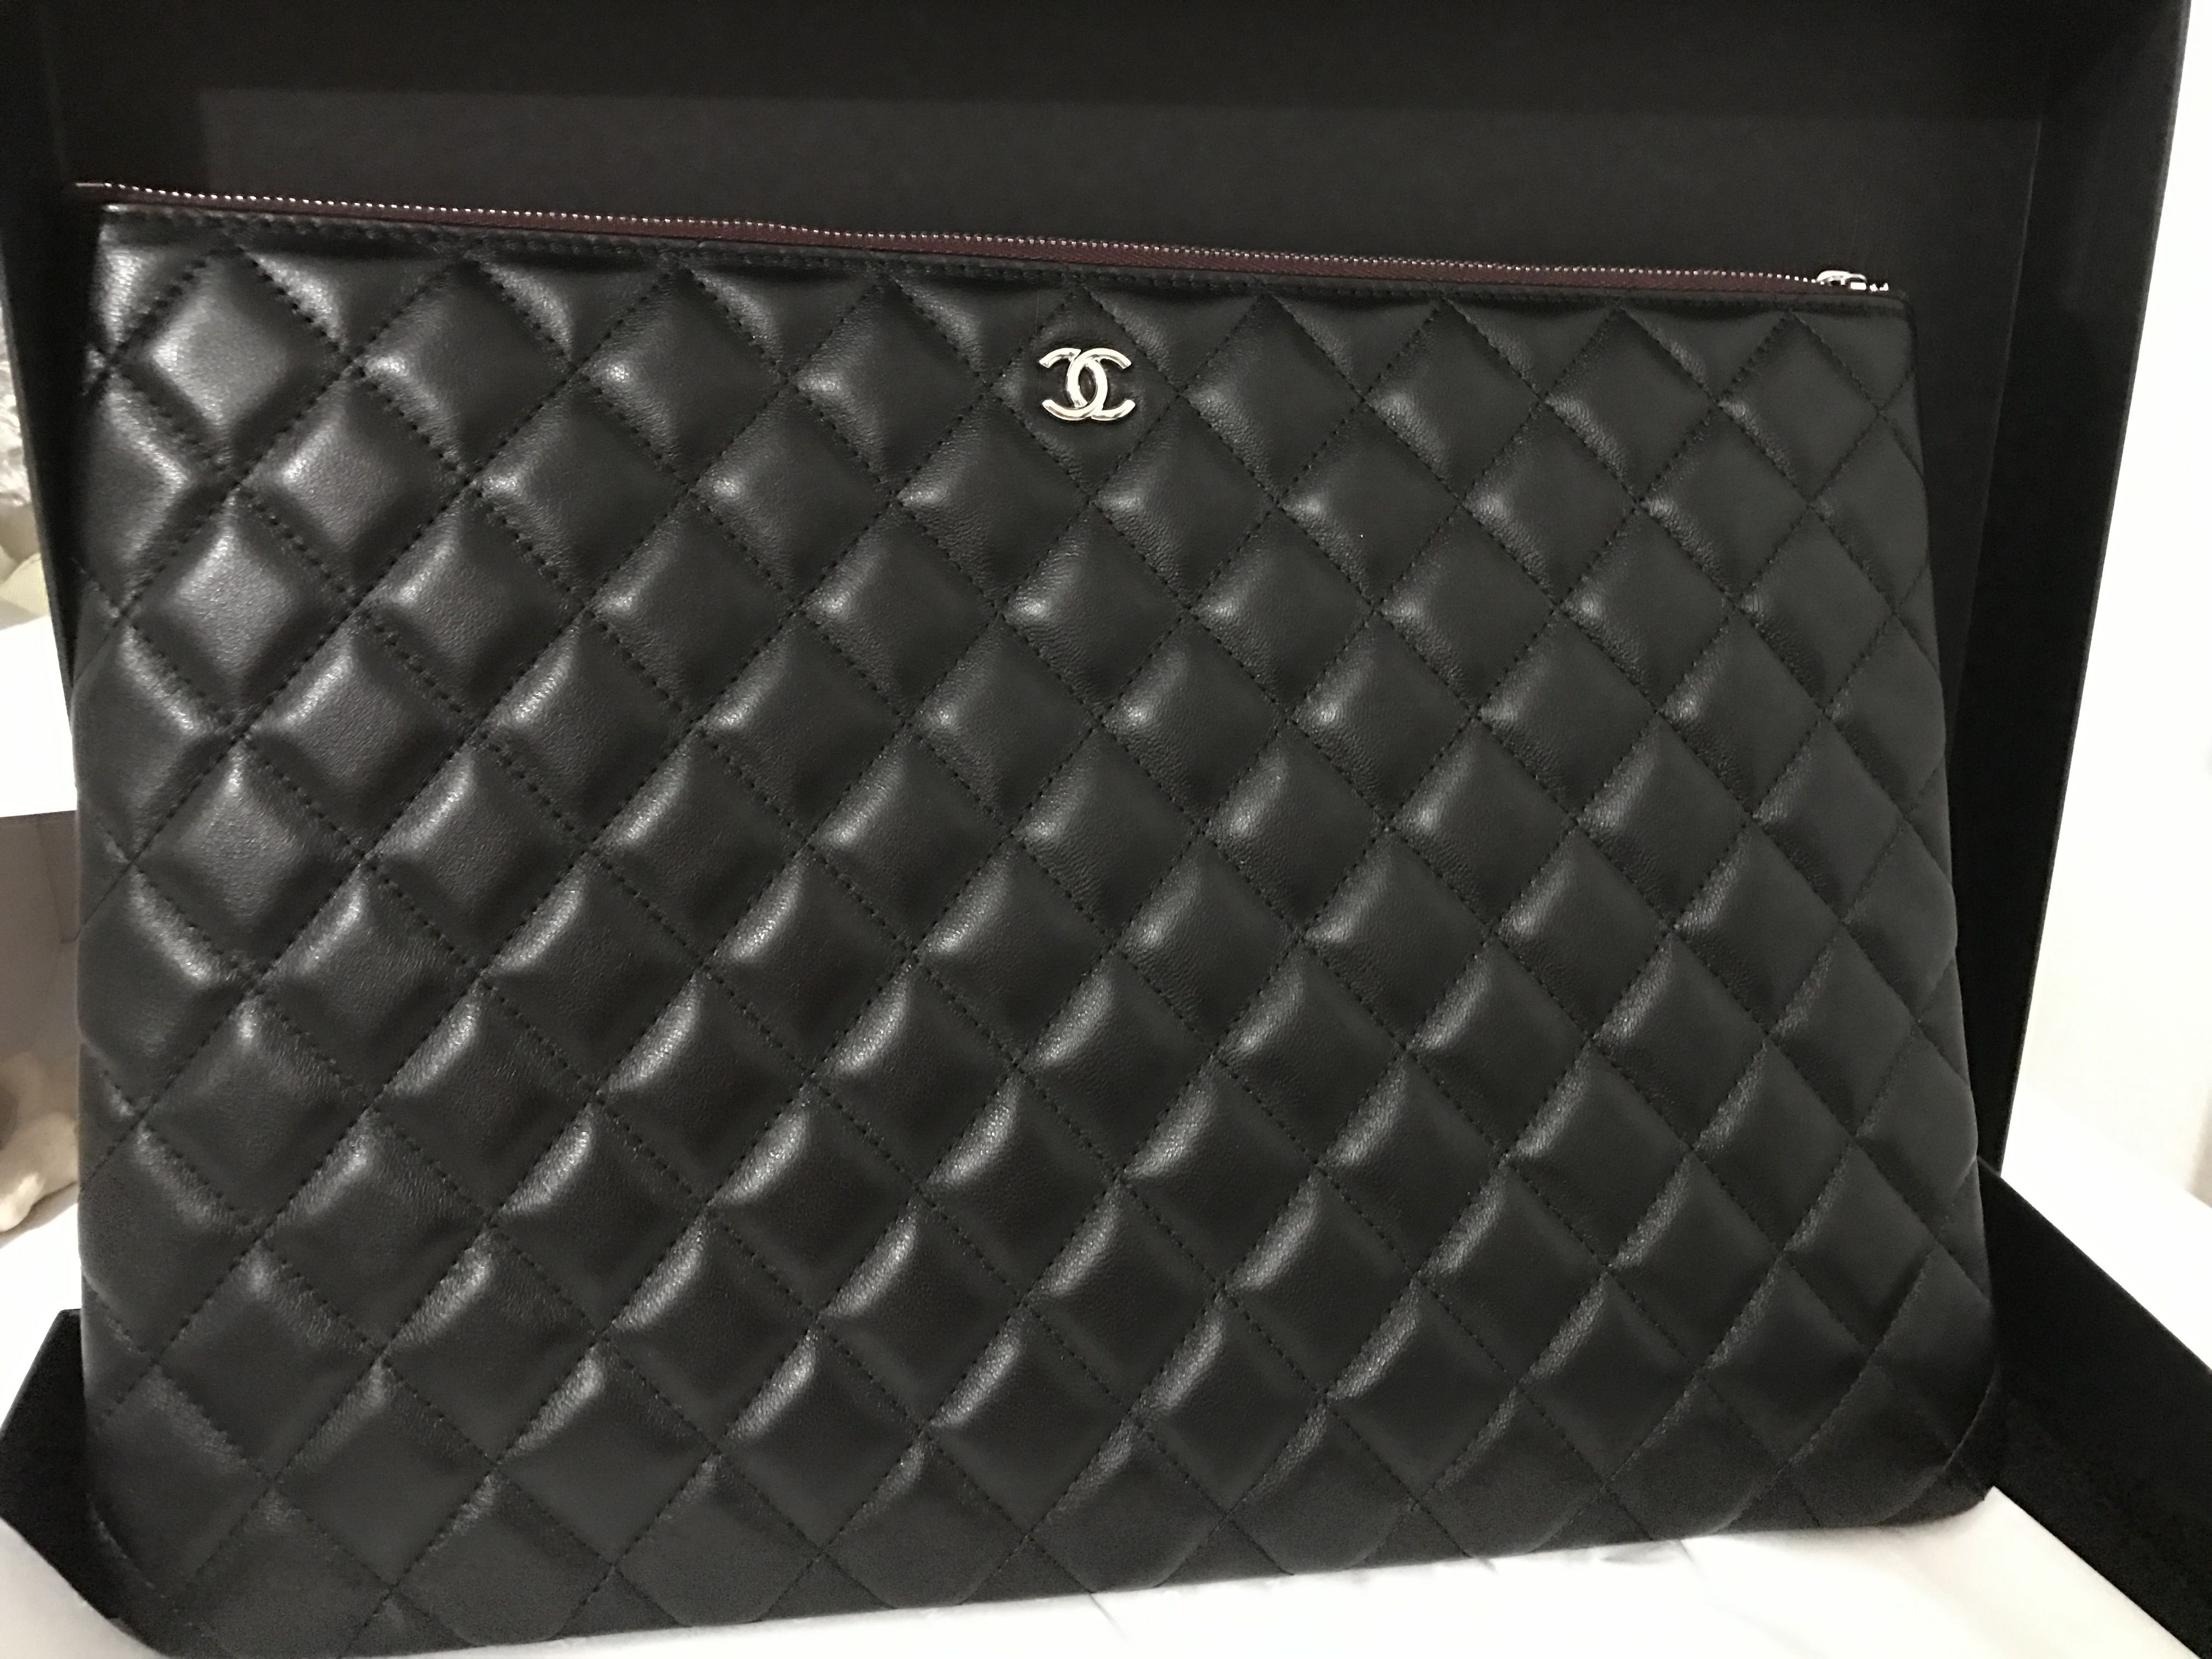 f6fe3250669385 Chanel, Chanel Clutch, Chanel Classic, Chanel Black Clutch, Clutch bag,  Pouch, Chanel O Case, Chanel Caviar, Chanel Lamb Skin Clutch.